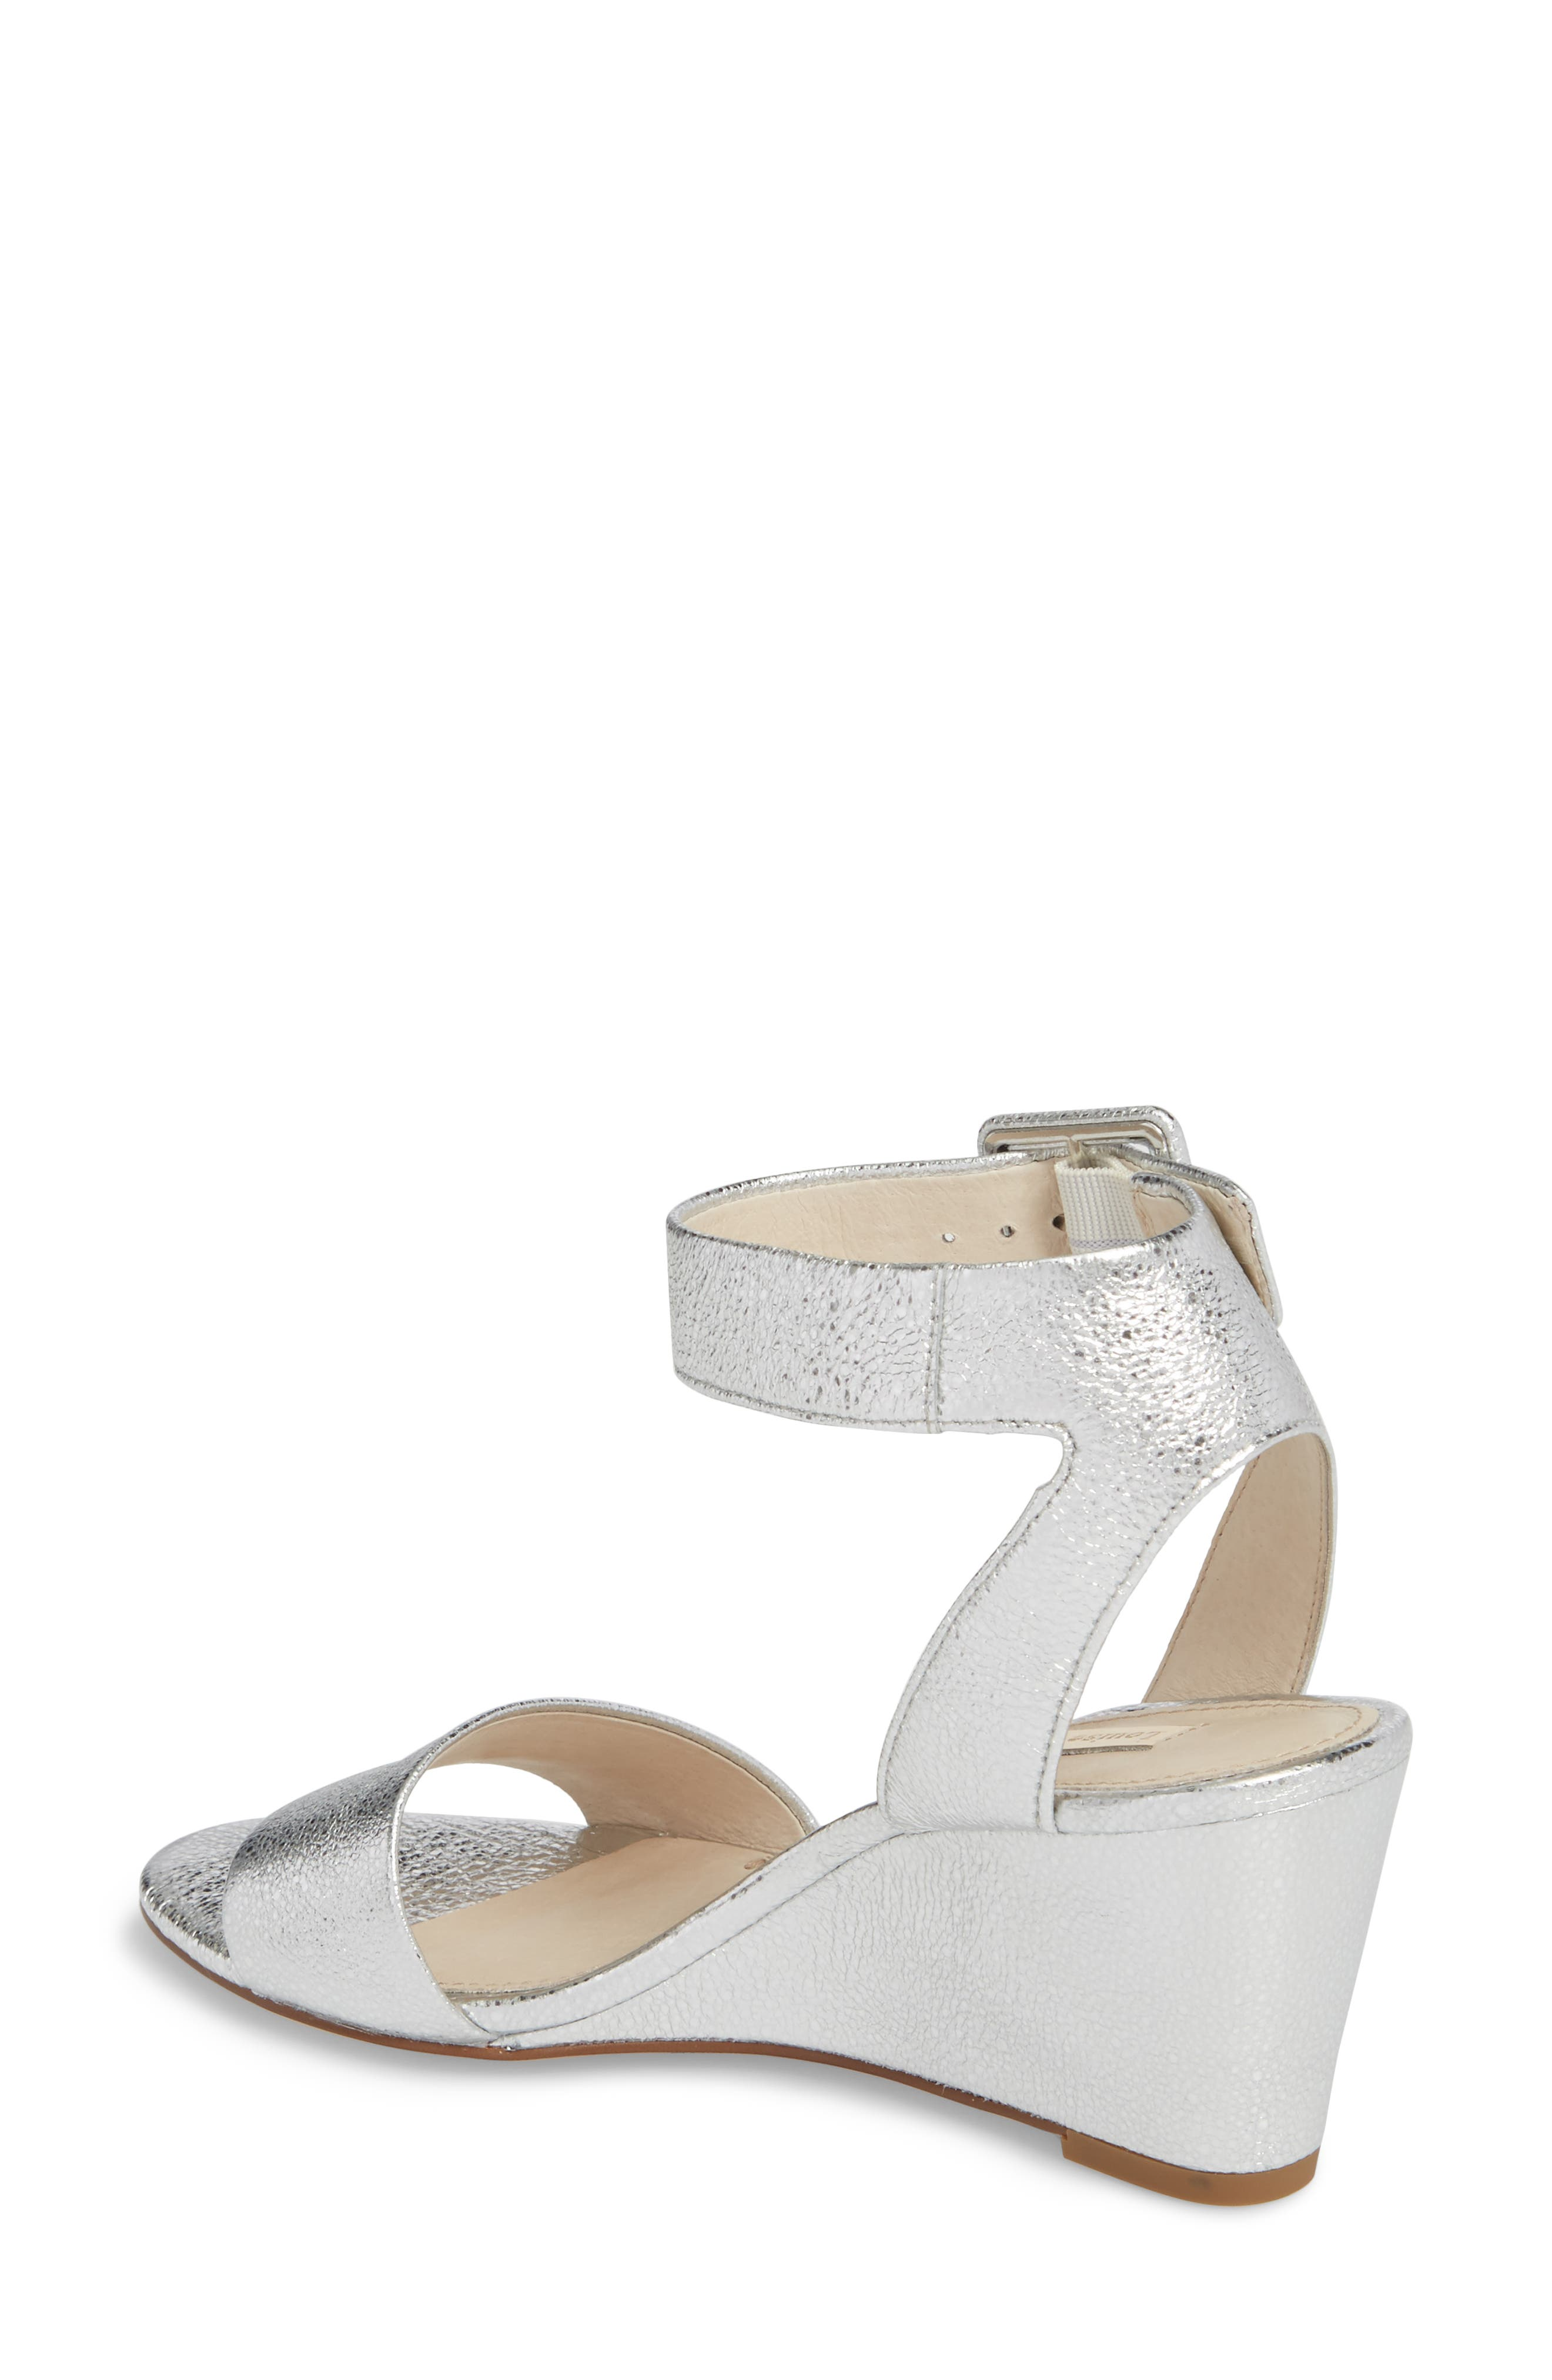 LOUISE ET CIE, Punya Wedge Sandal, Alternate thumbnail 2, color, STERLING LEATHER